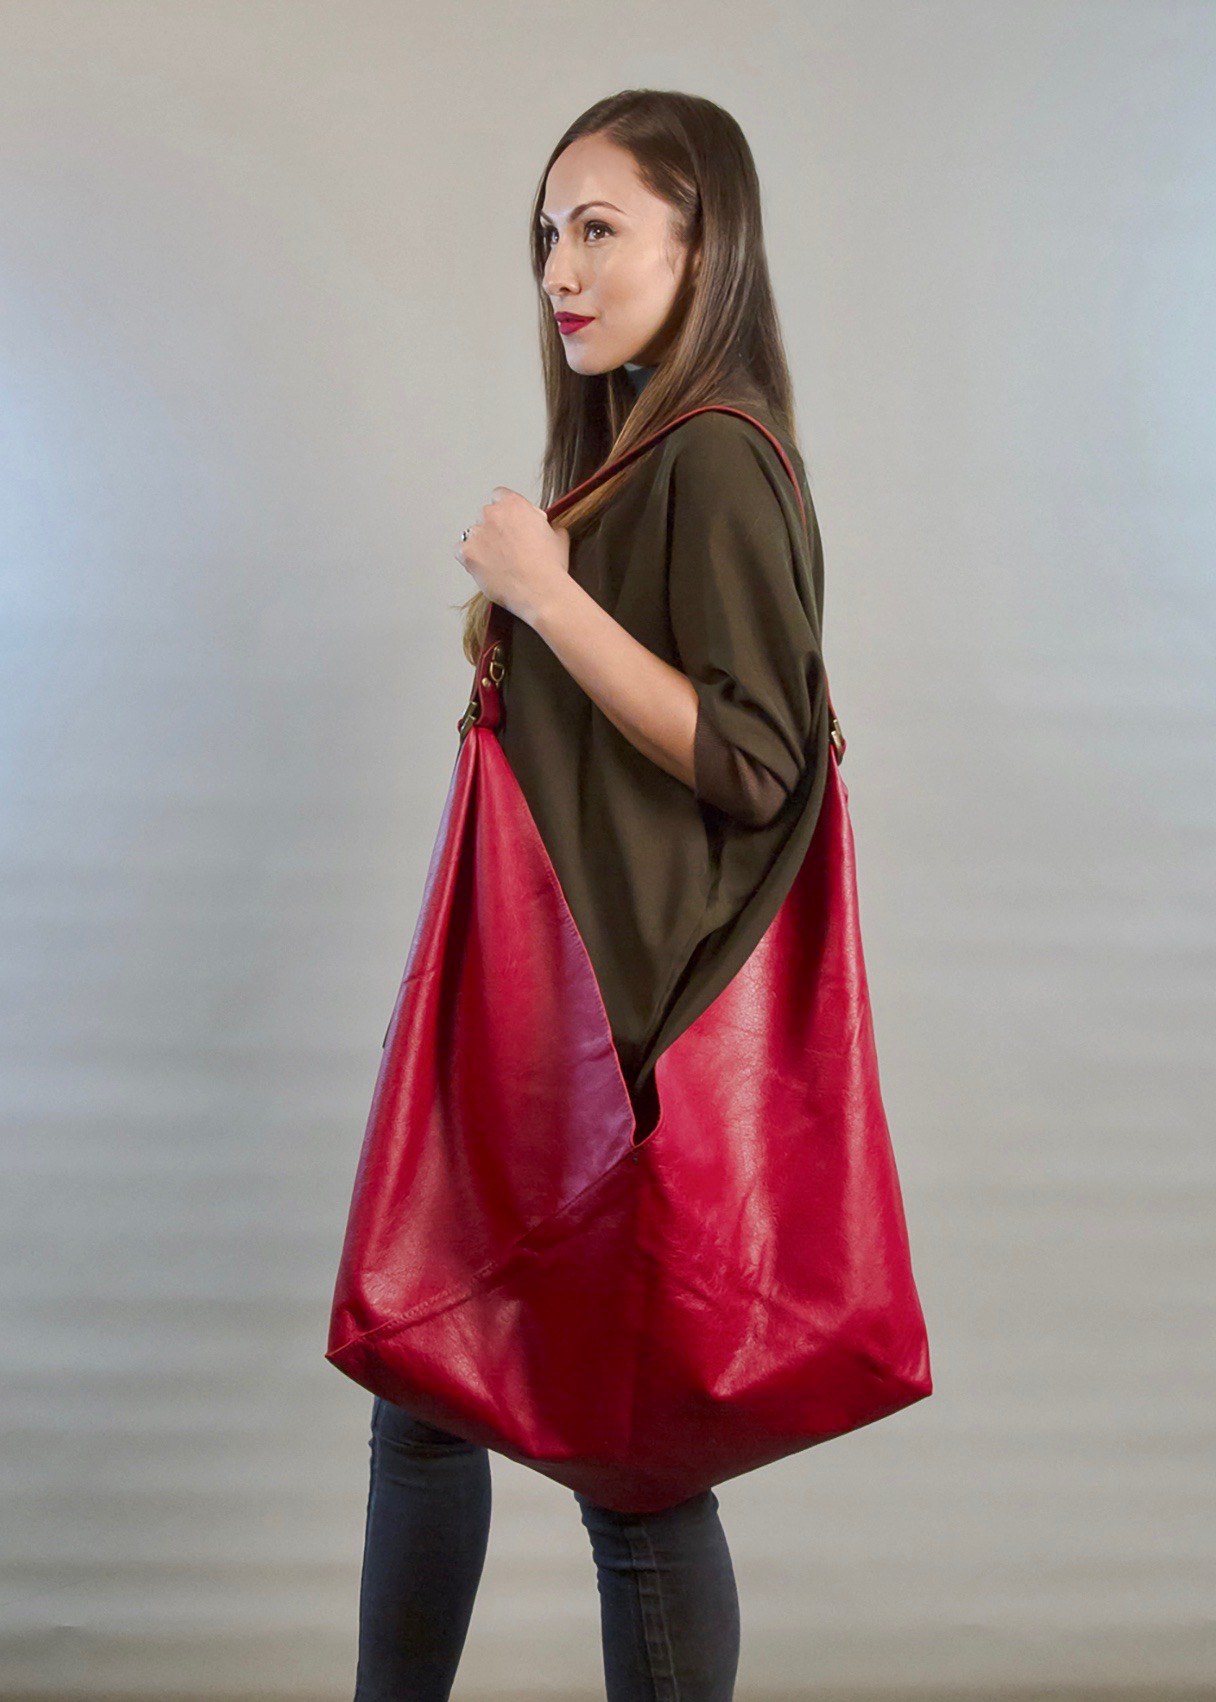 - LARGE LEATHER BAG IN RED W/ WIDE HANDLE IN BURGUNDY